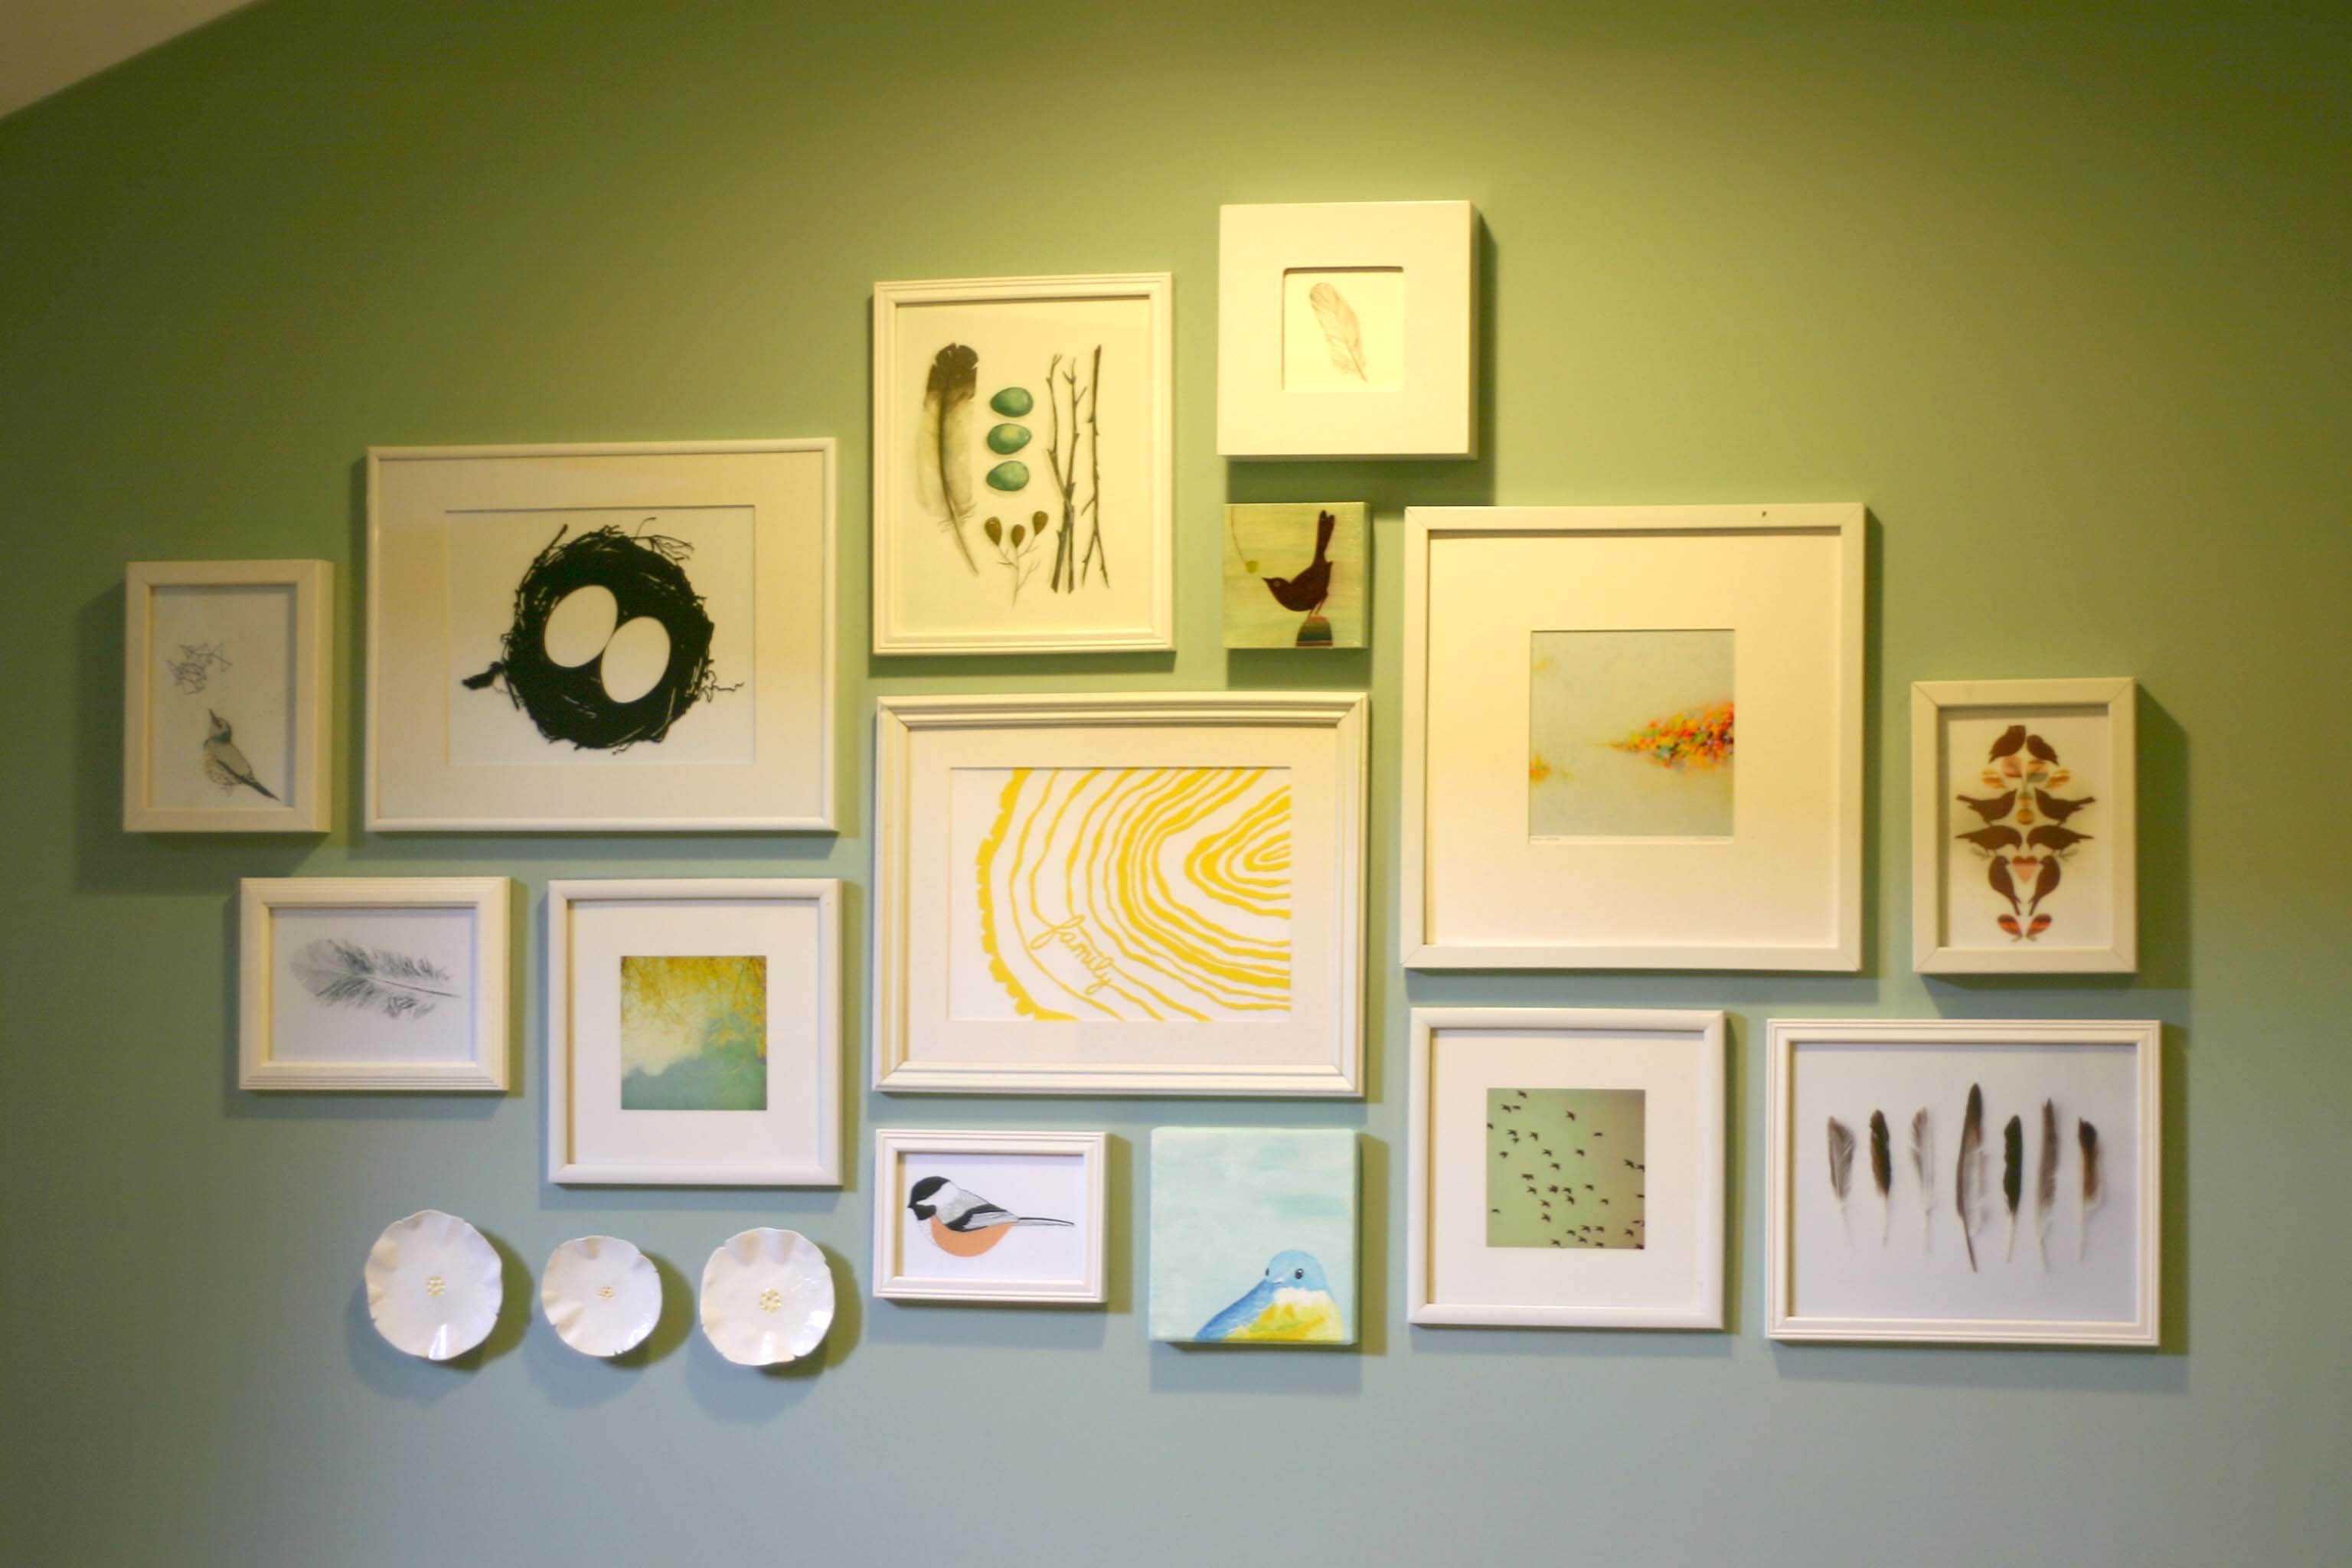 Creative Gallery Wall Ideas - Gallery Wall Decor - Intridge.org